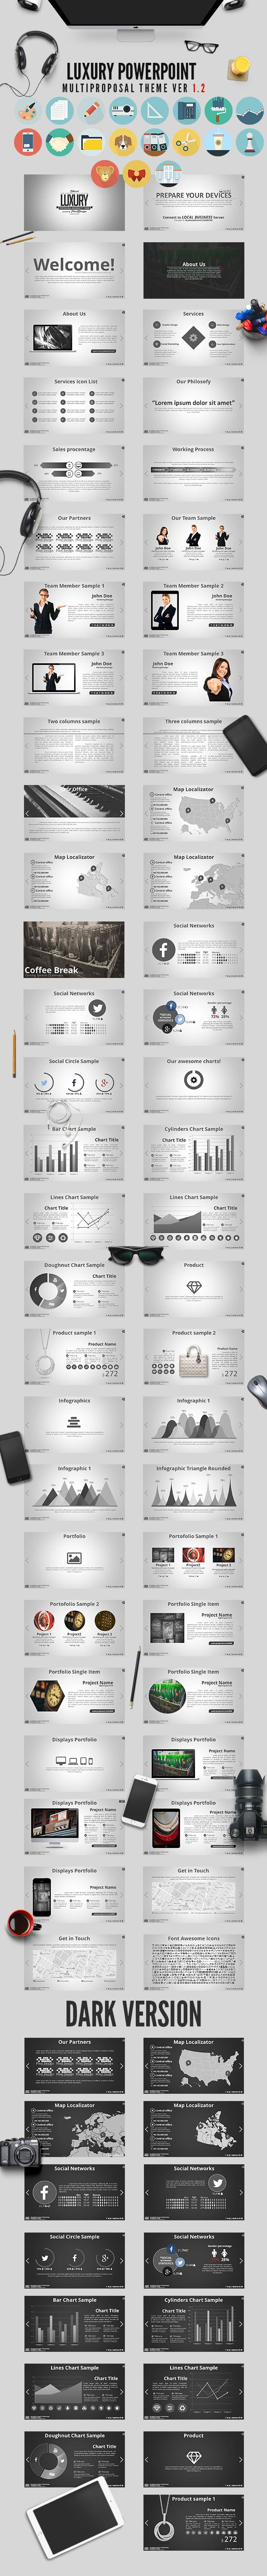 Luxury PowerPoint Theme Ver 1.2 — Powerpoint PPTX #displays #elegant • Available here → https://graphicriver.net/item/luxury-powerpoint-theme-ver-12/7569038?ref=pxcr